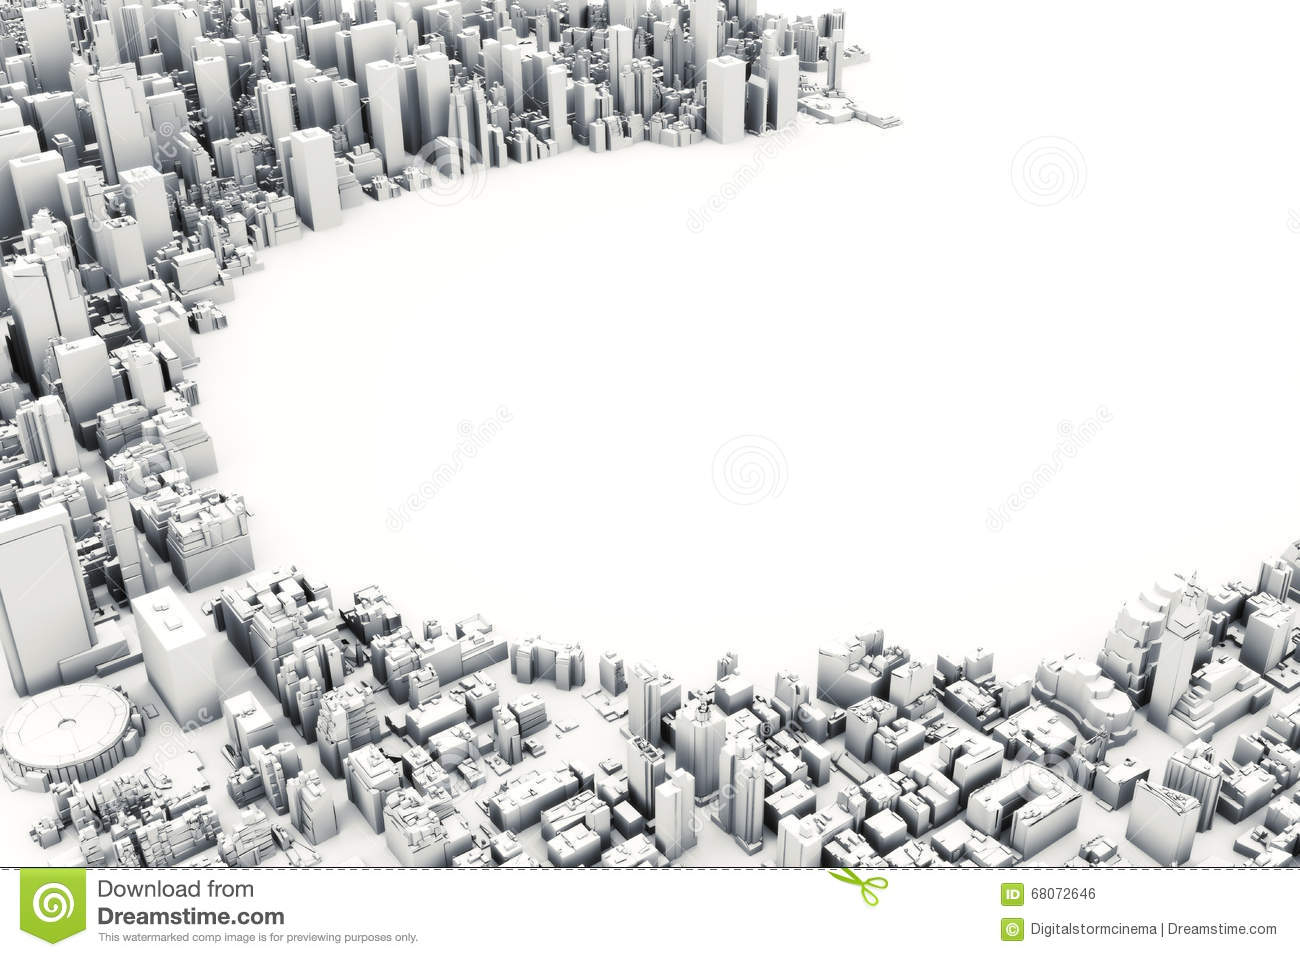 Picture Book Illustration Making An Architectural Model: Architectural 3D Model Illustration Of A Large City On A